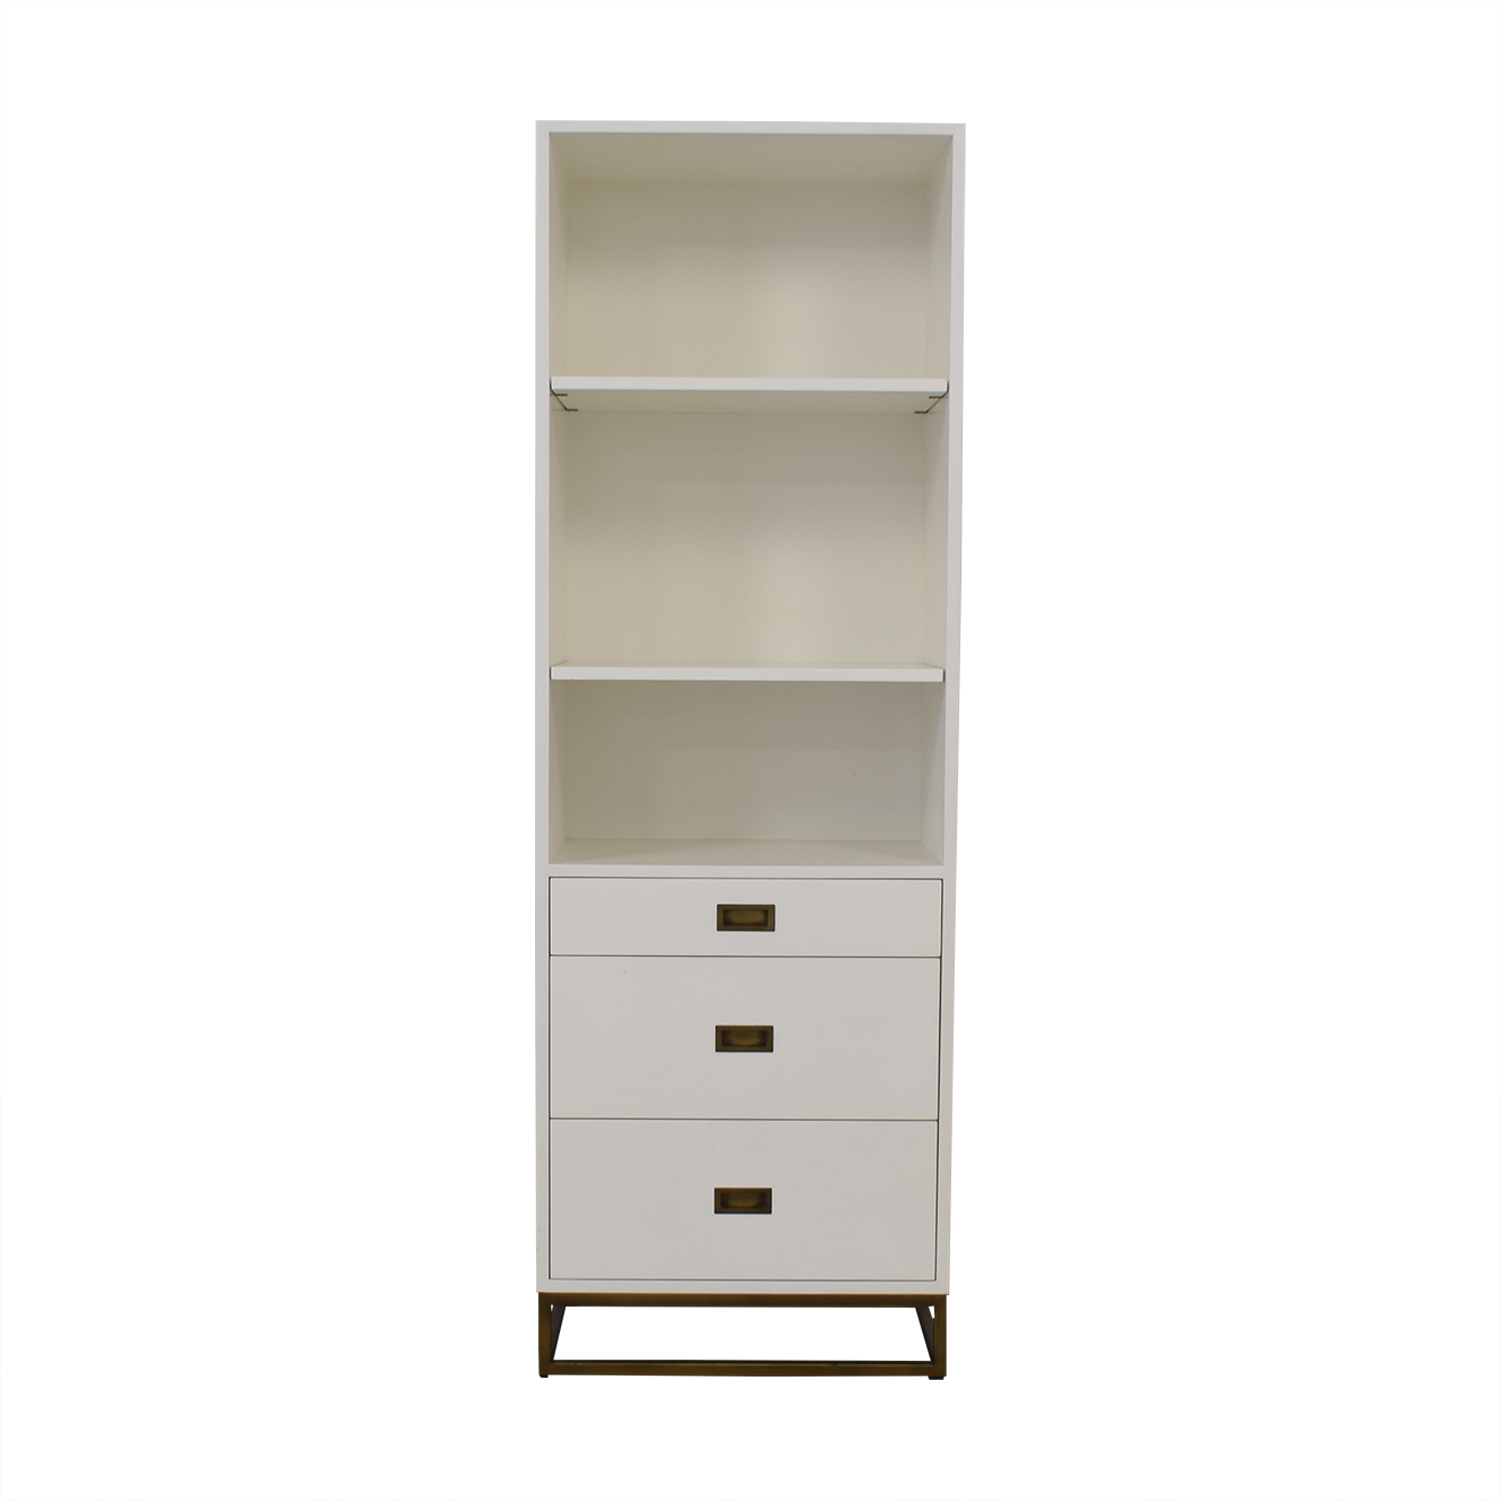 Restoration Hardware Restoration Hardware Avalon Bookcase Tower for sale